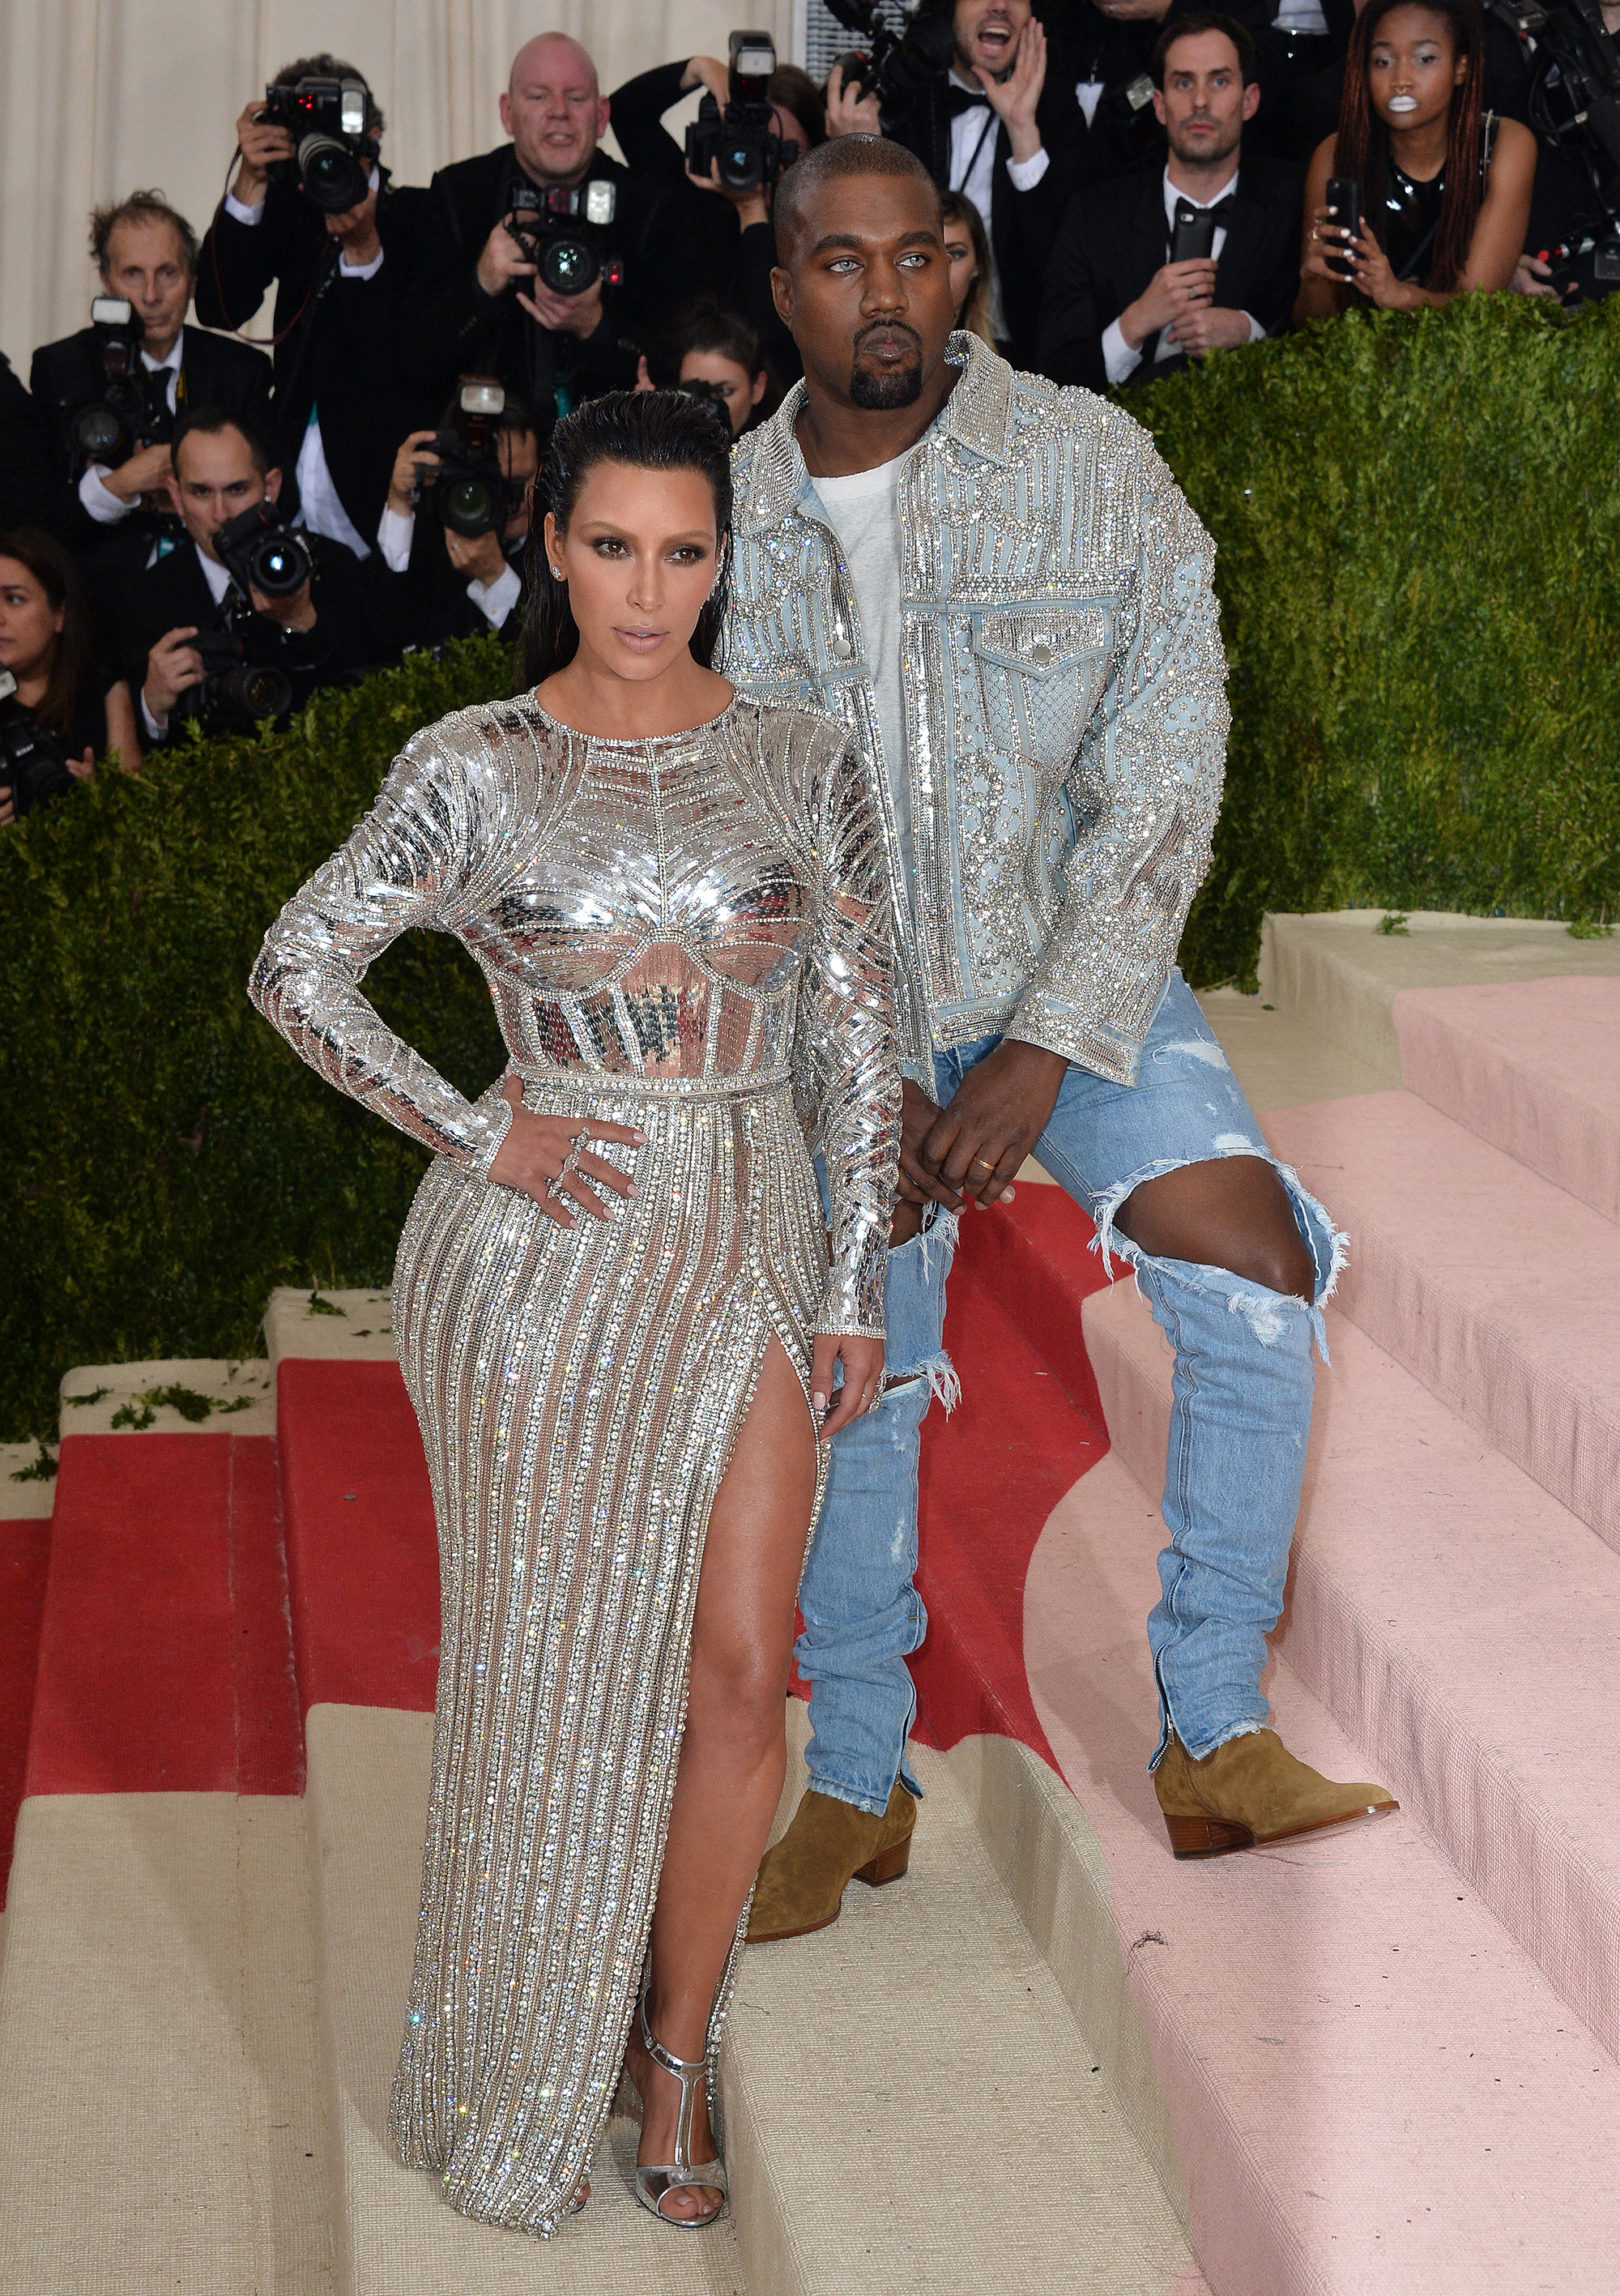 File Photo Of Kim Kardashian And Kanye West Attend The Manus X Machina: Fashion In An Age Of Technology Costume Institute Benefit Gala At Metropolitan Museum Of Art On May 2, 2016 In New York City, NY, USA. КРЕДИТ Hahn Lionel/Abaca/Sipa USA/Legion Media